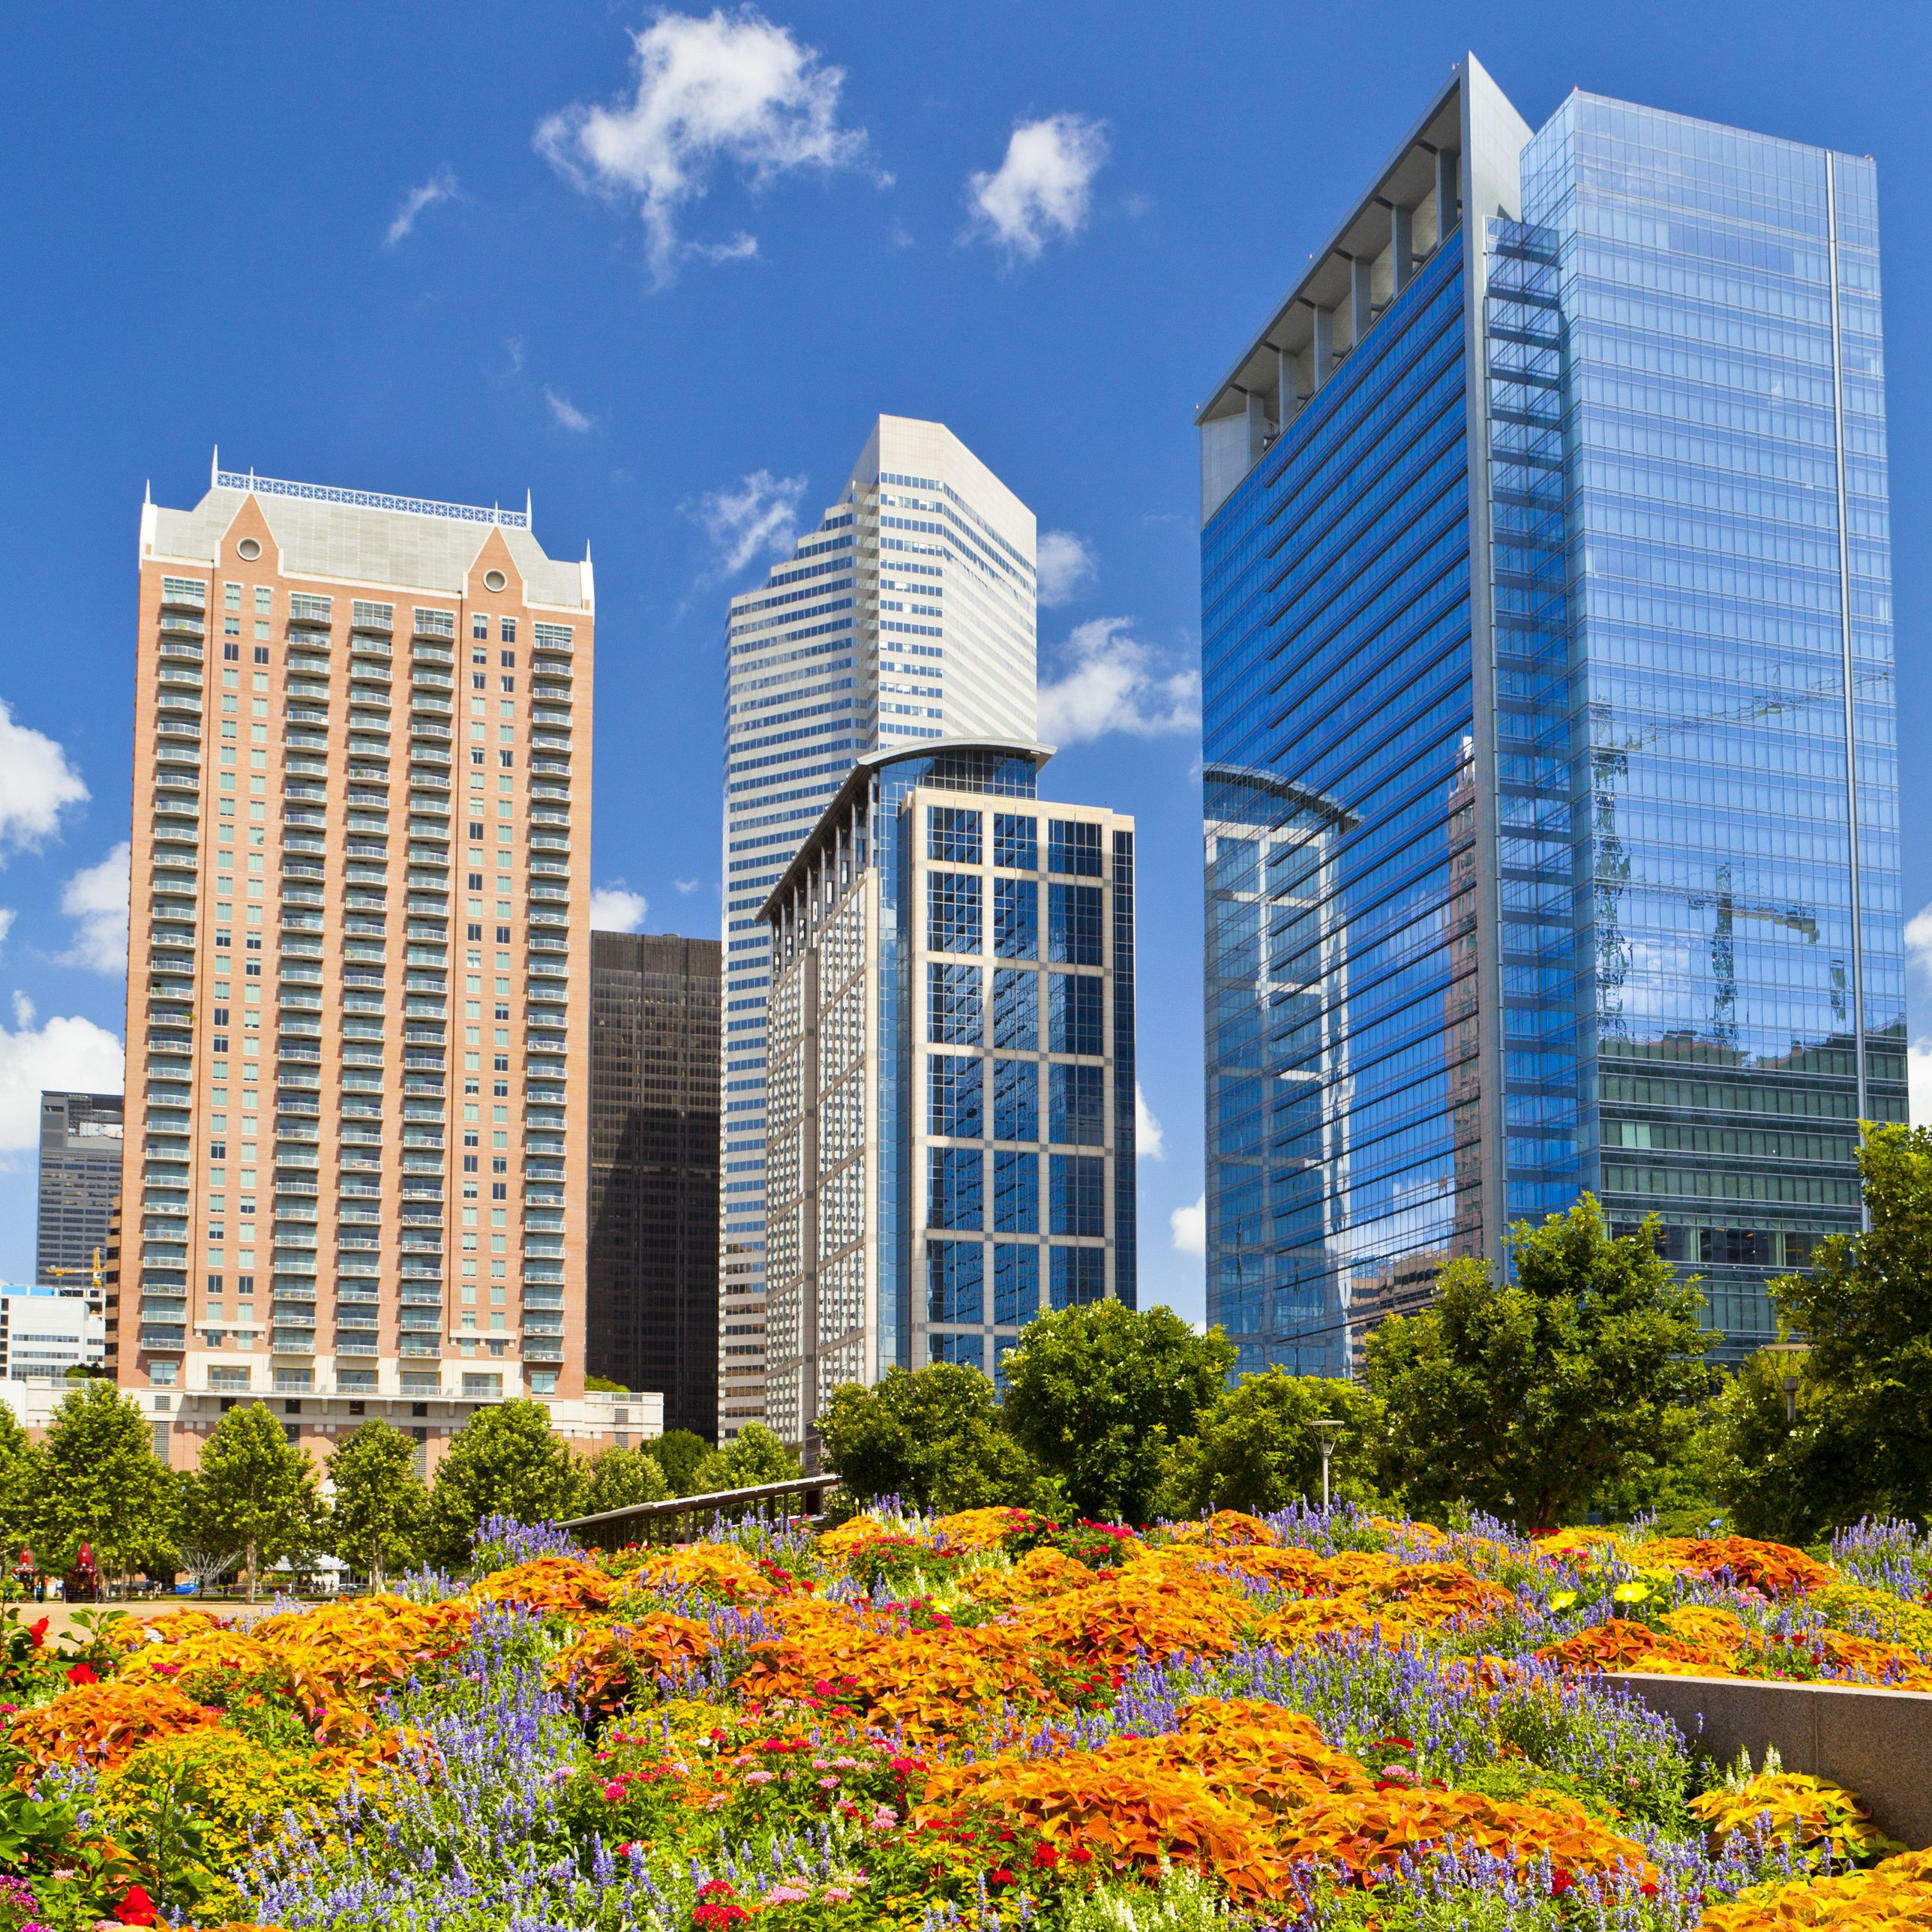 20 Best Attractions And Things To Do In Houston Texas